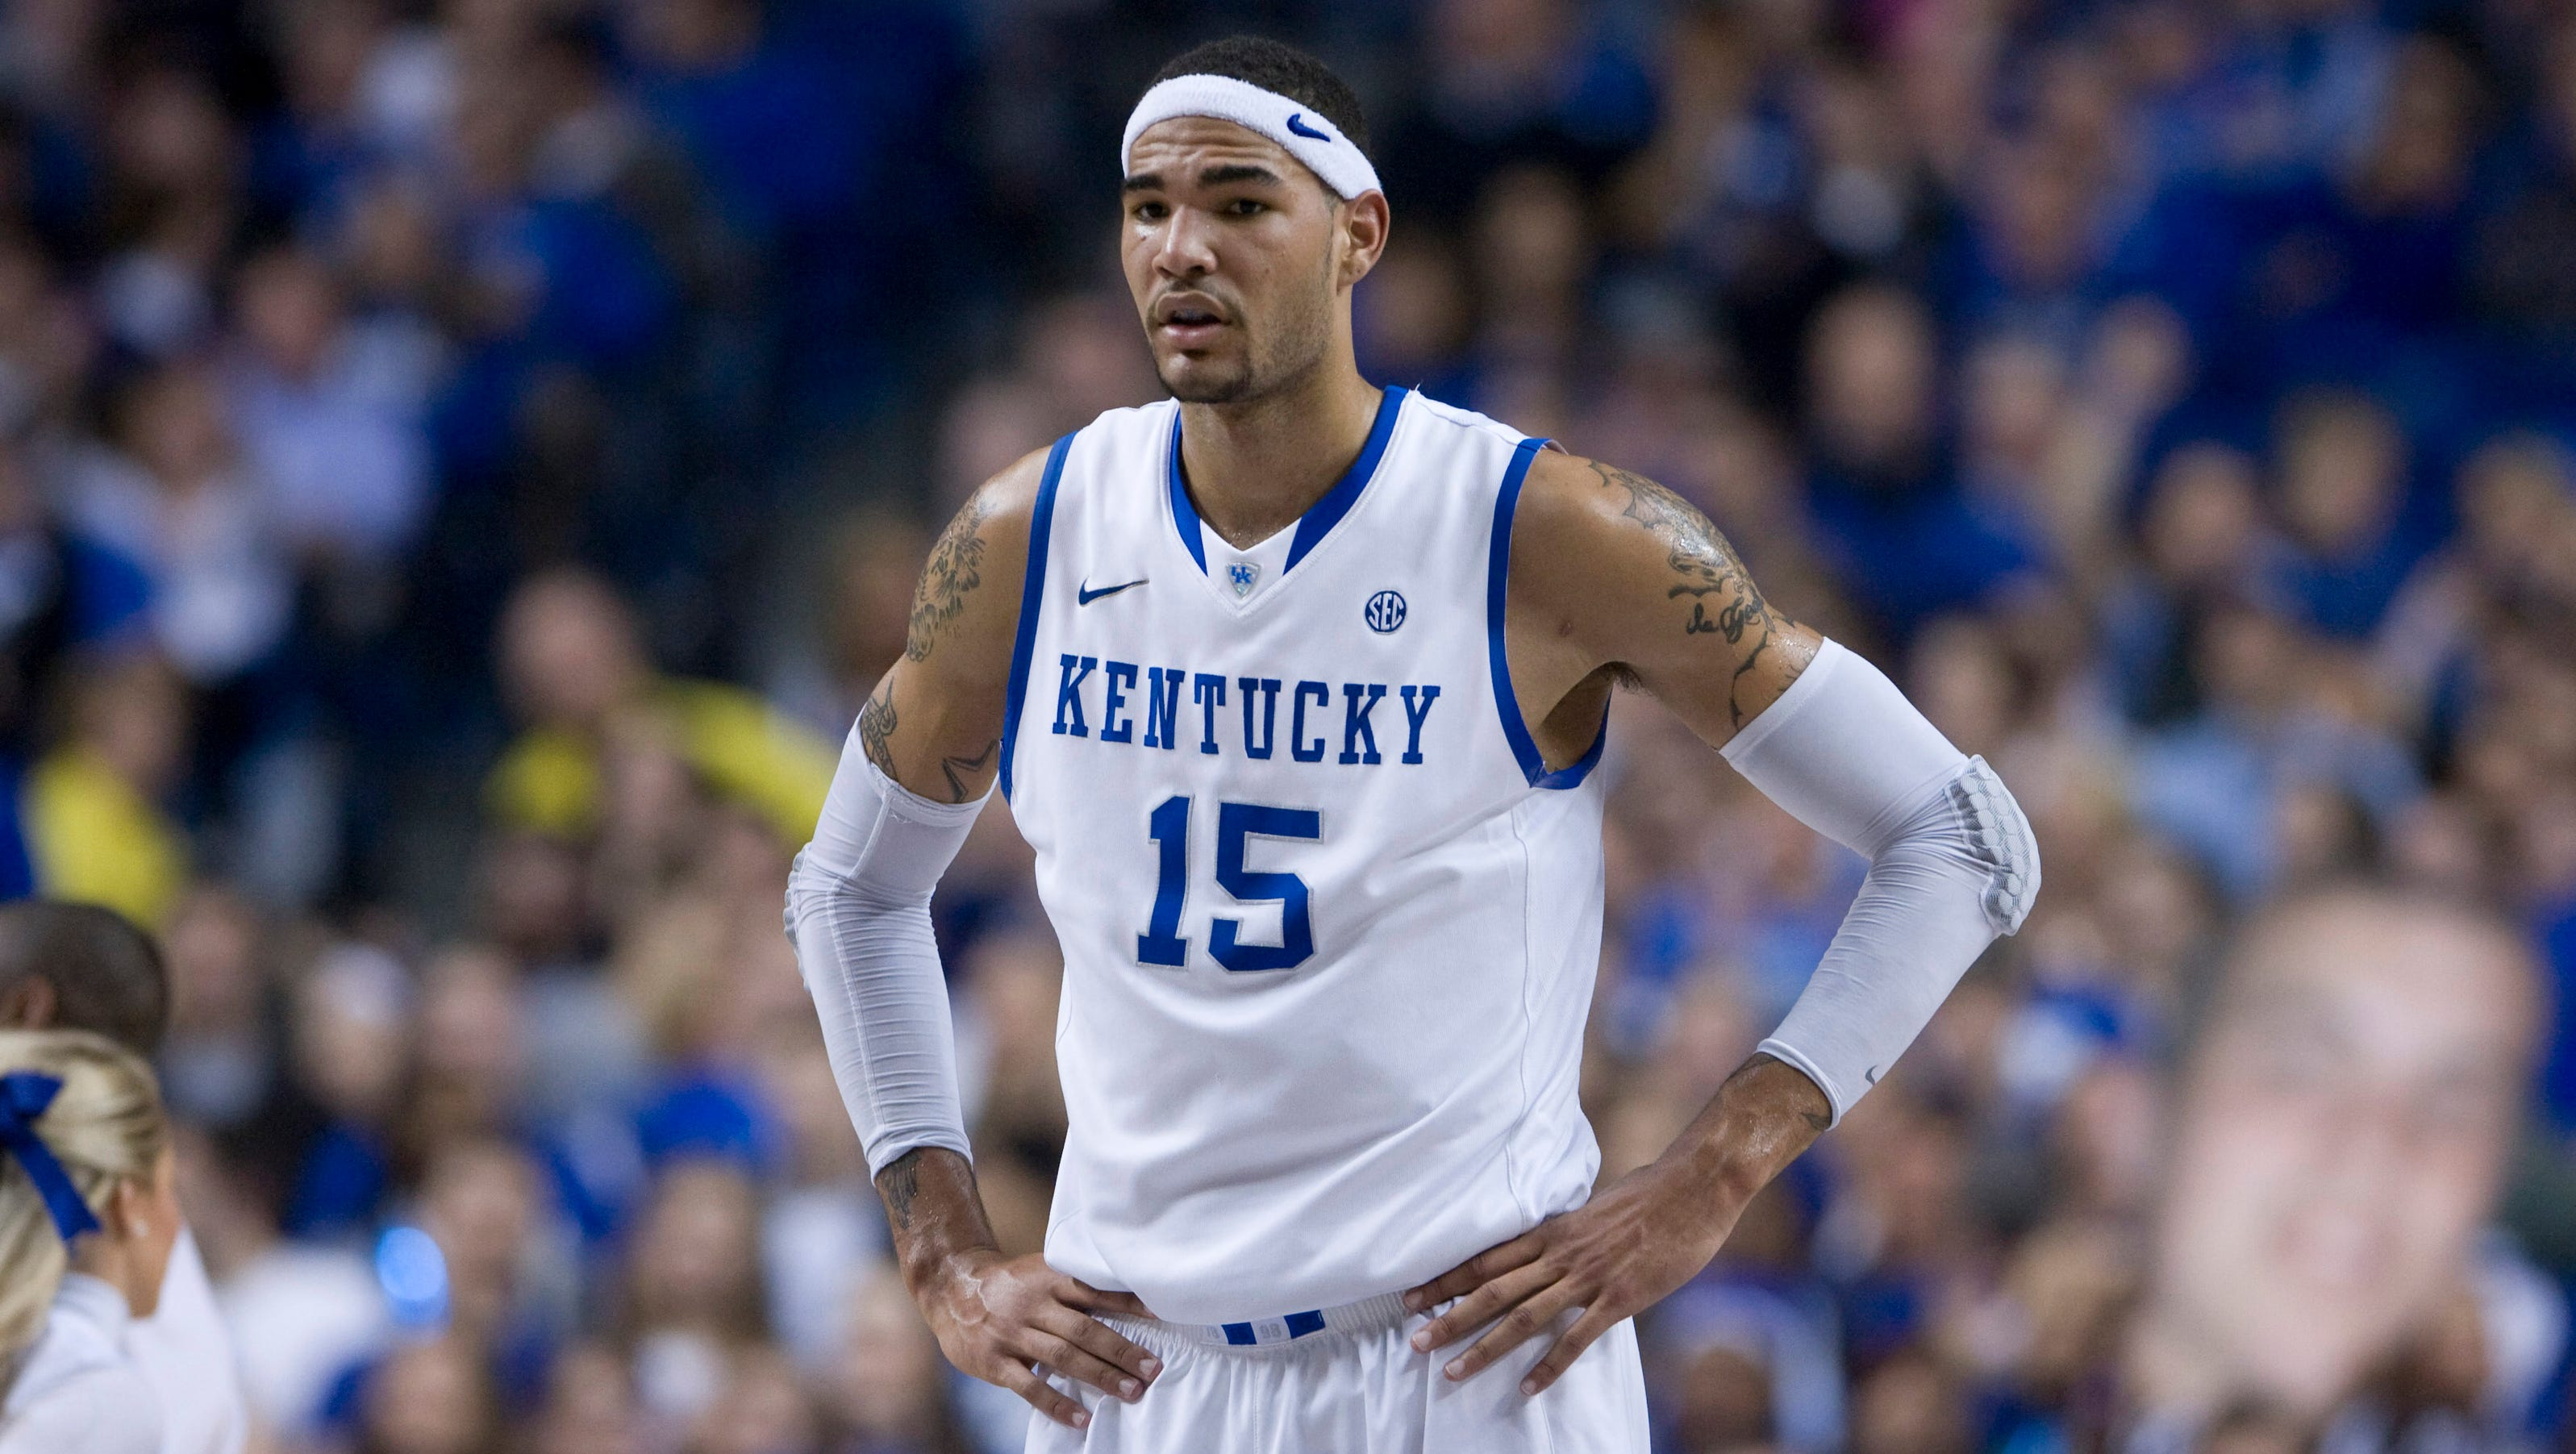 kentucky 39 s willie cauley stein out up to two weeks. Black Bedroom Furniture Sets. Home Design Ideas